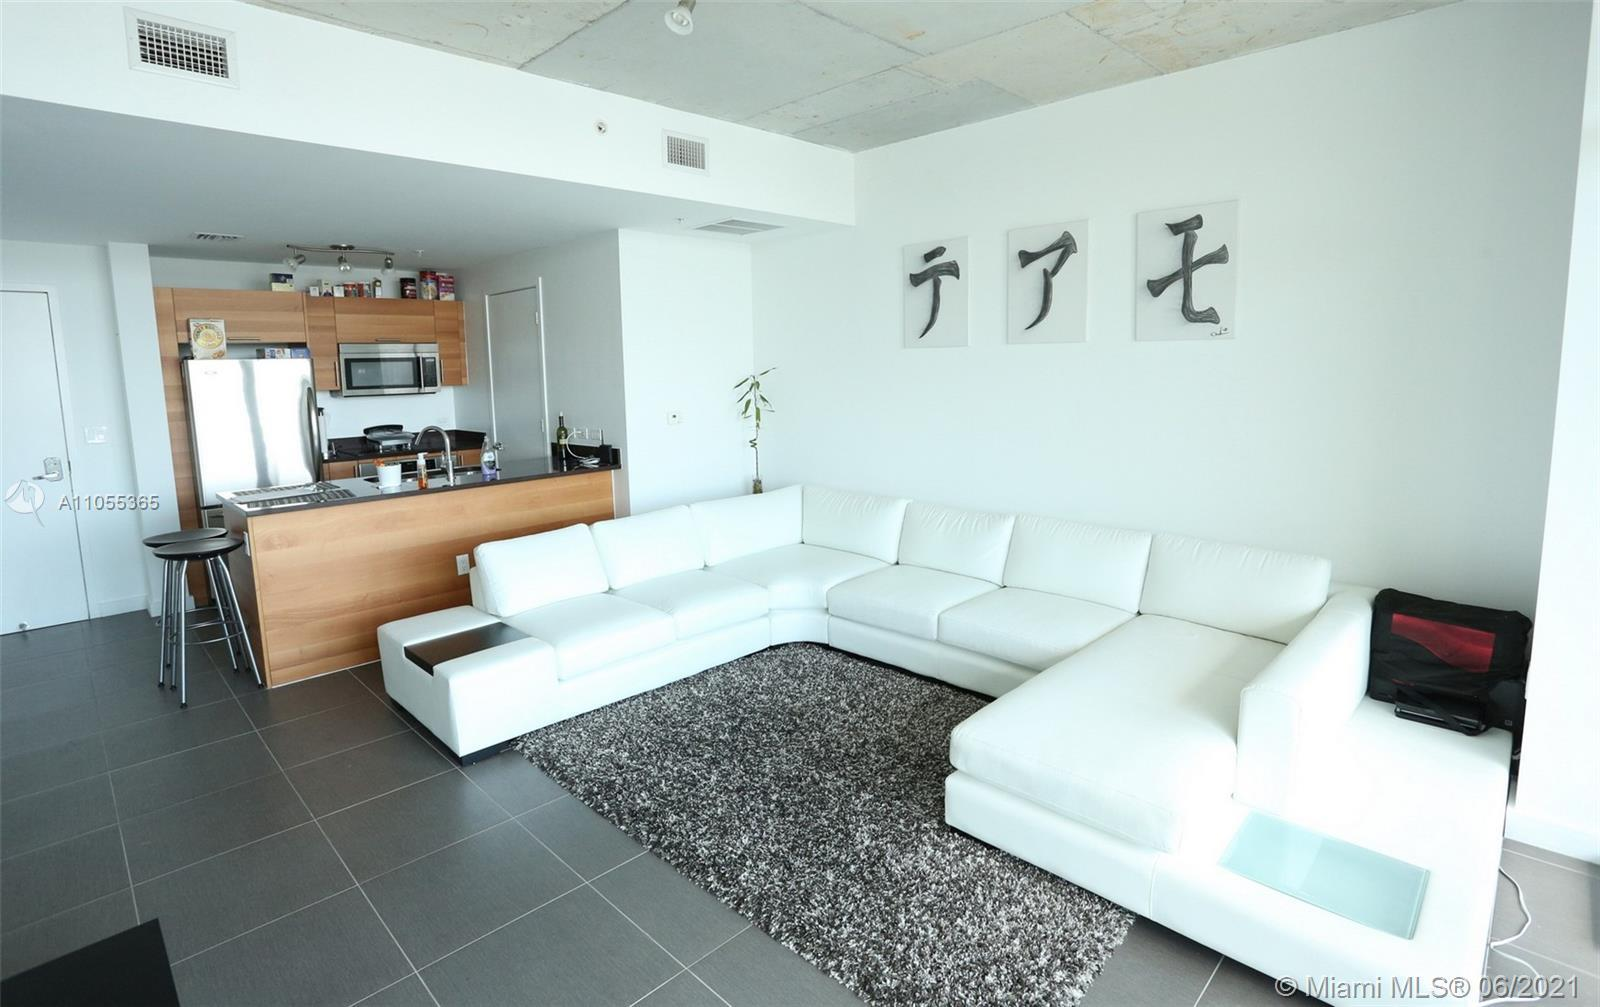 Beautiful and bright one bedroom with tile flooring throughout, features a gourmet chef kitchen, flo